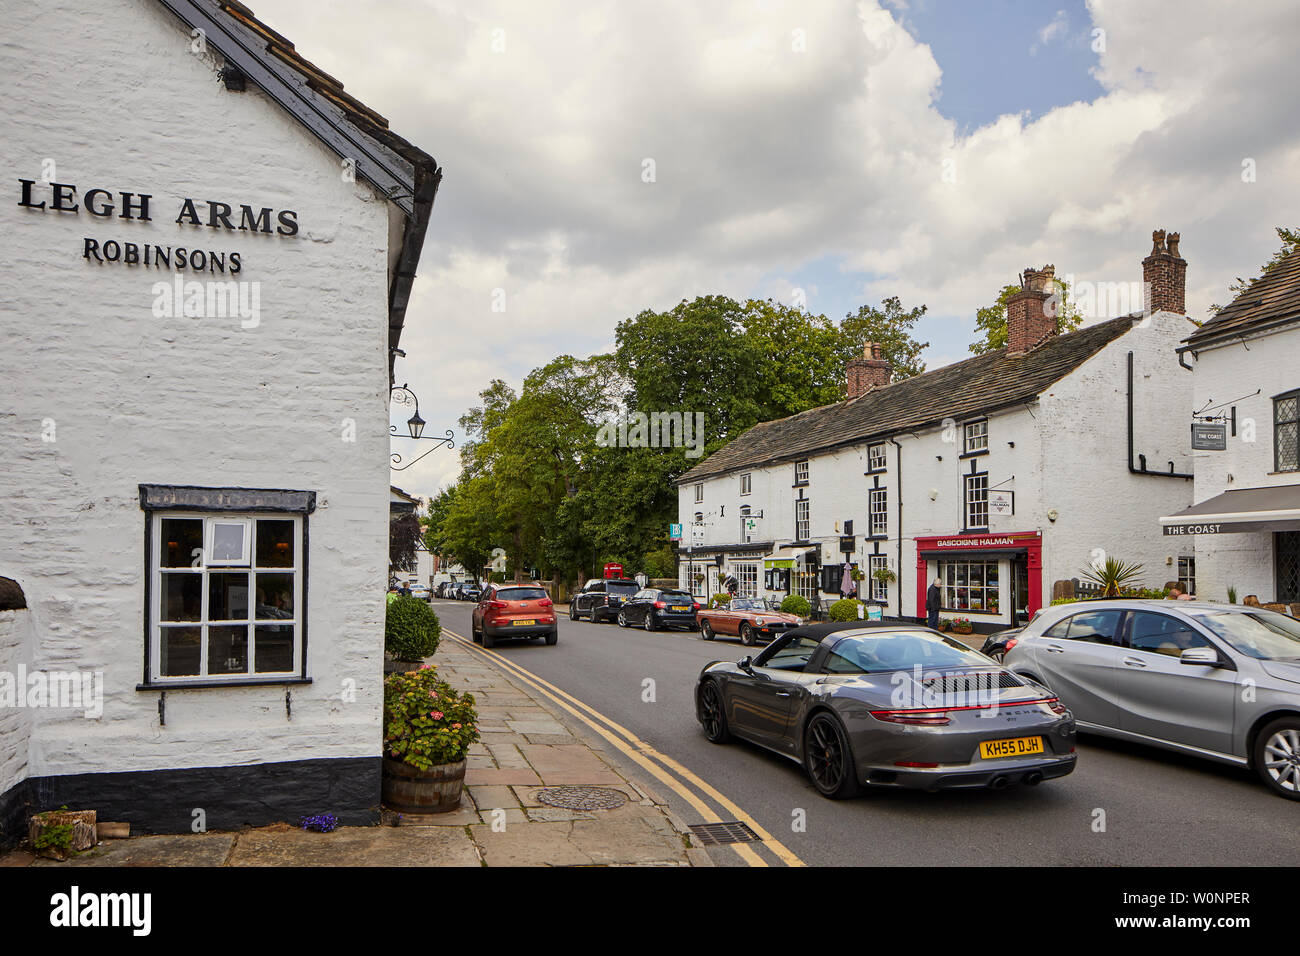 Prestbury is a village and civil parish in Cheshire, England. About 1.5 miles north of Macclesfield - Stock Image